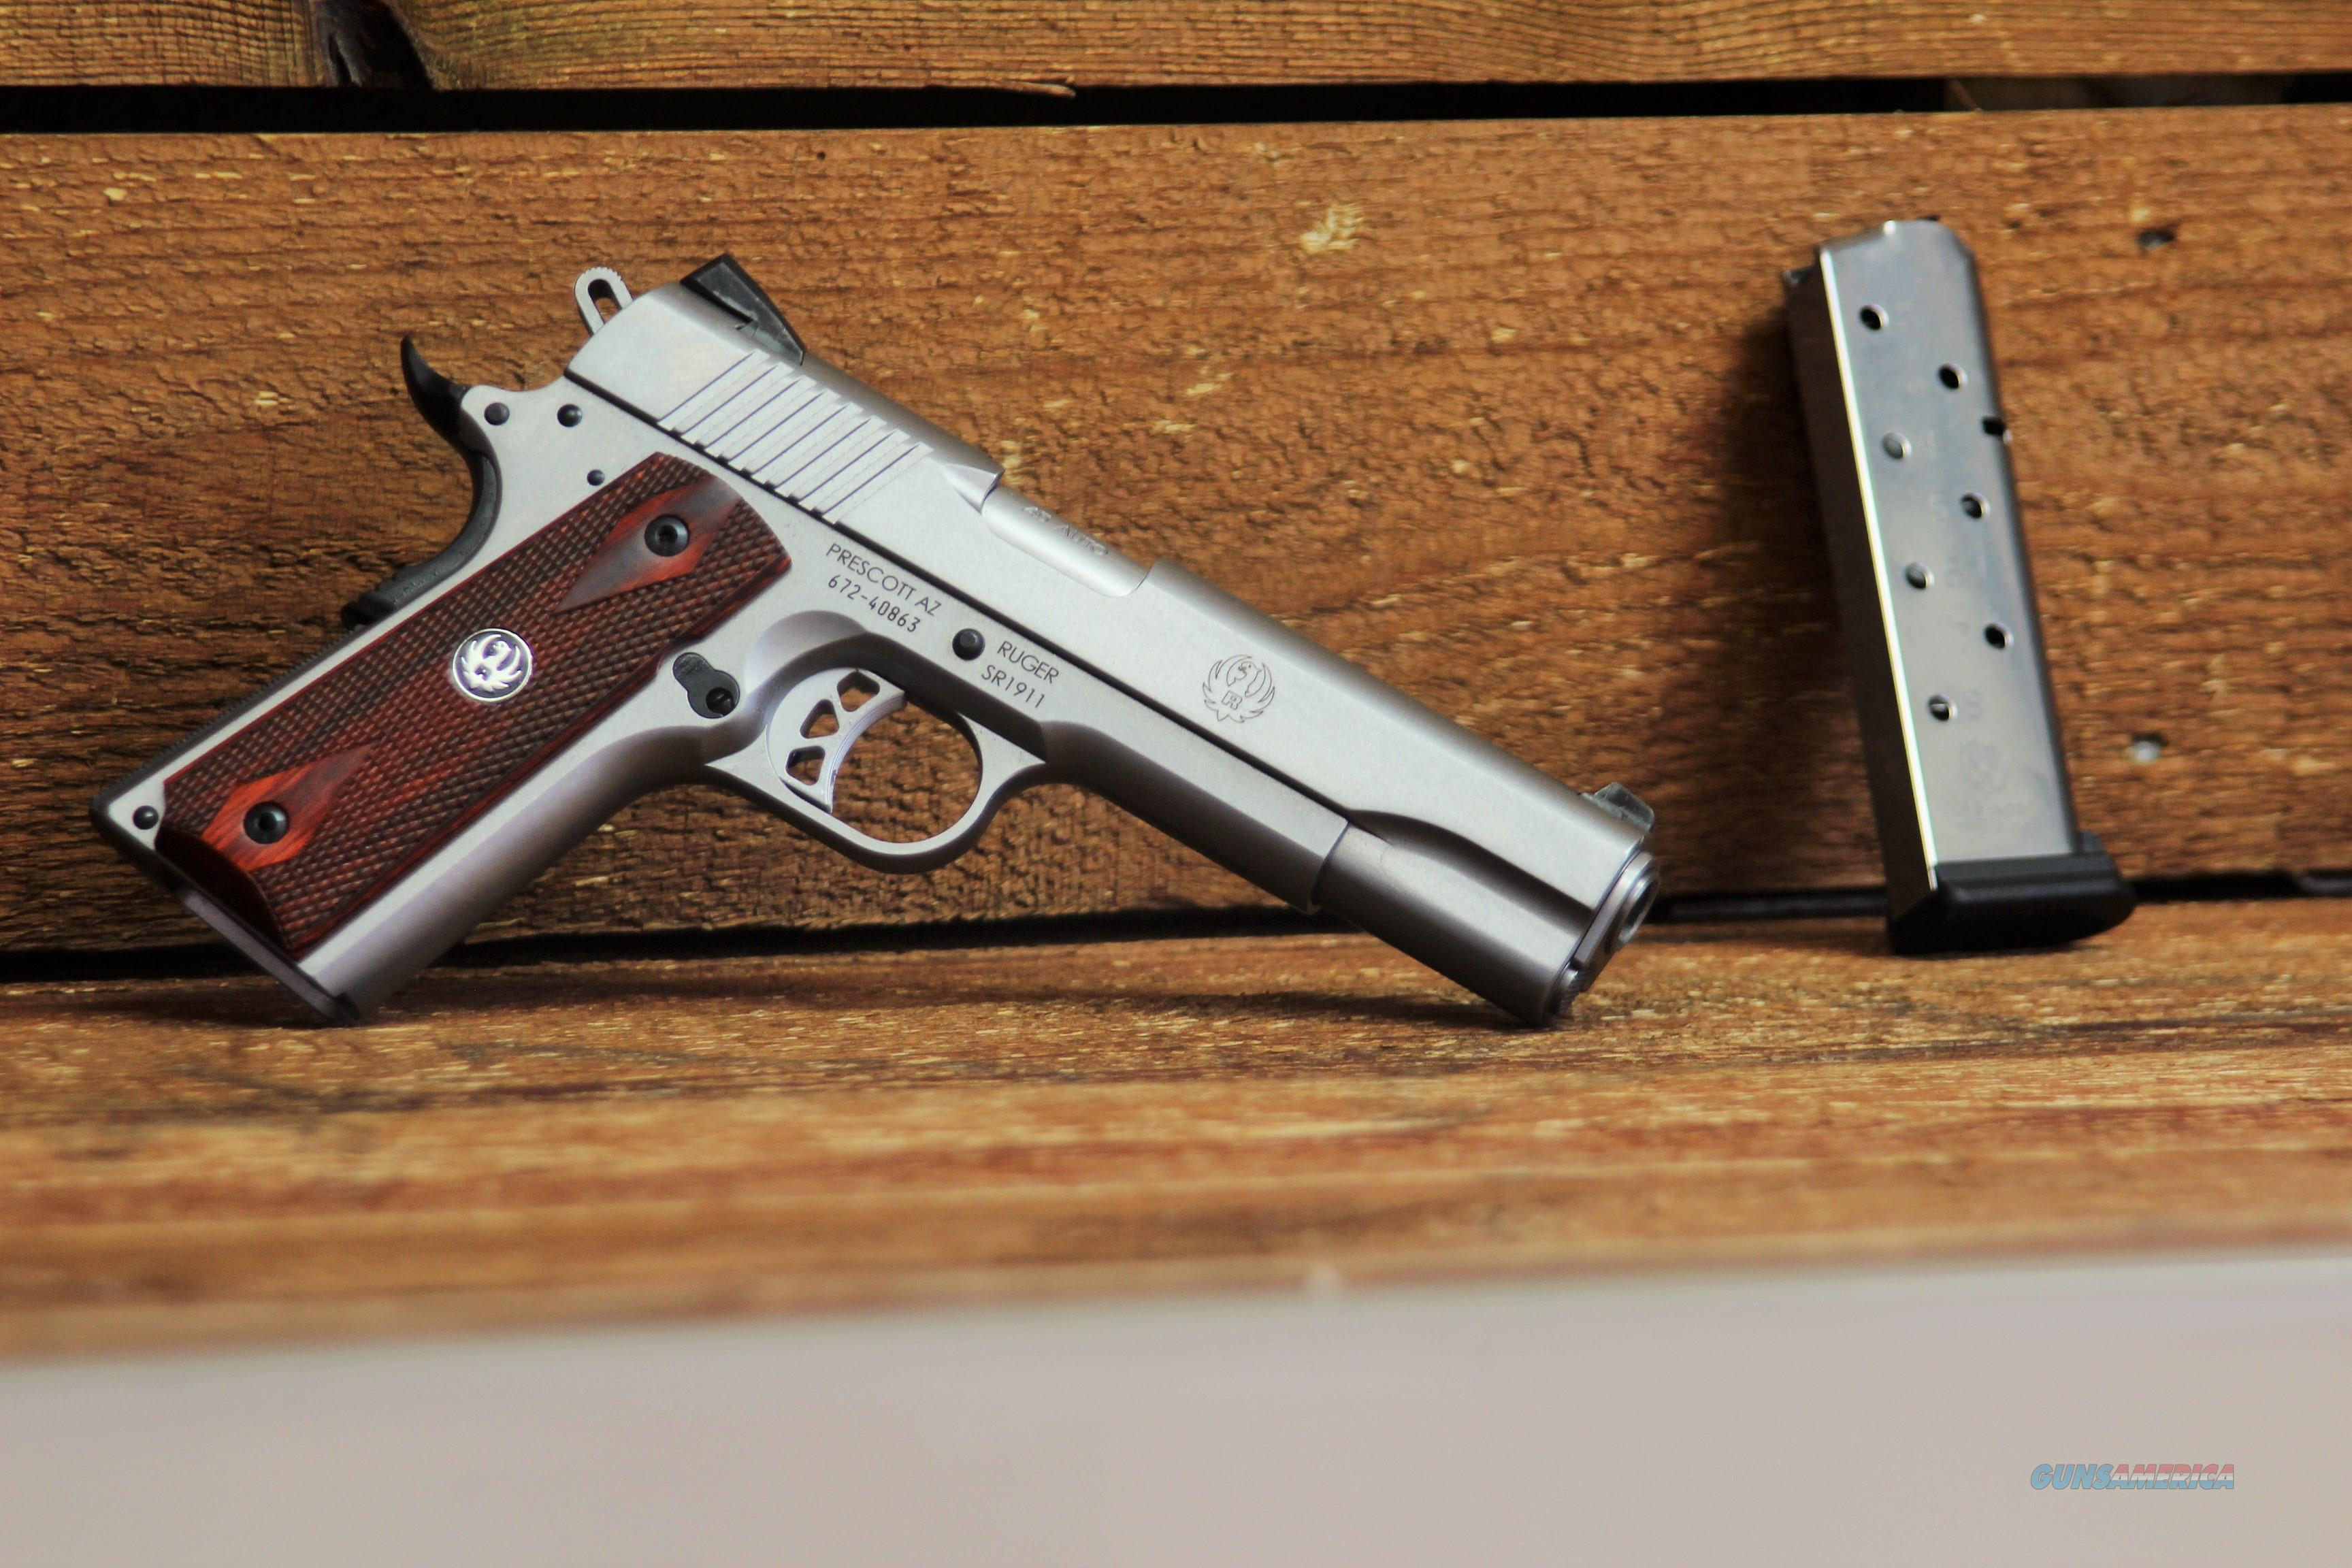 $70  EASY PAY Ruger Traditional design wood grip 1911 beavertail grip Extended thumb safety  SR-1911 45ACP ( Automatic Colt Pistol )fixed Novak Classic light trigger target  titanium firing pin  lightweight Stainless Steel SS 8 rounds 6700   Guns > Pistols > Ruger Semi-Auto Pistols > 1911